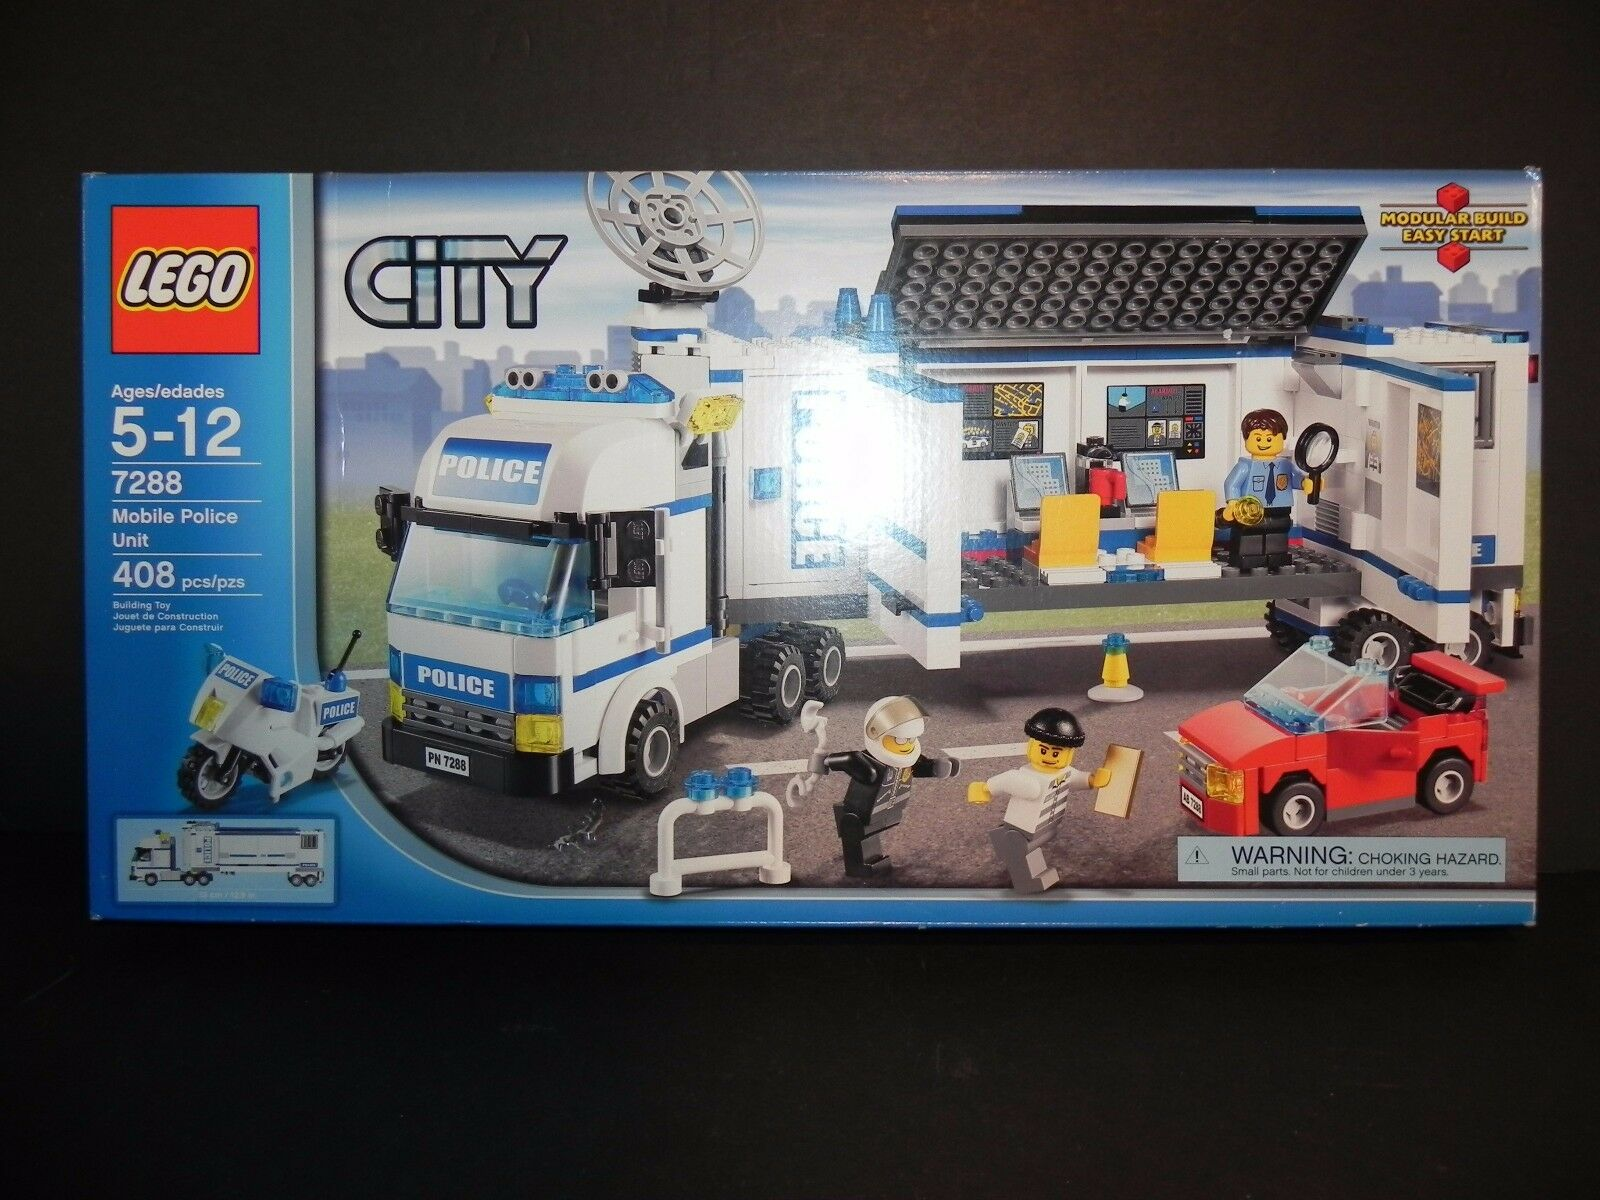 LEGO CITY - 7288 MOBILE POLICE UNIT ~ 408 Pieces from 2011 - Nuovo in Sealed Box